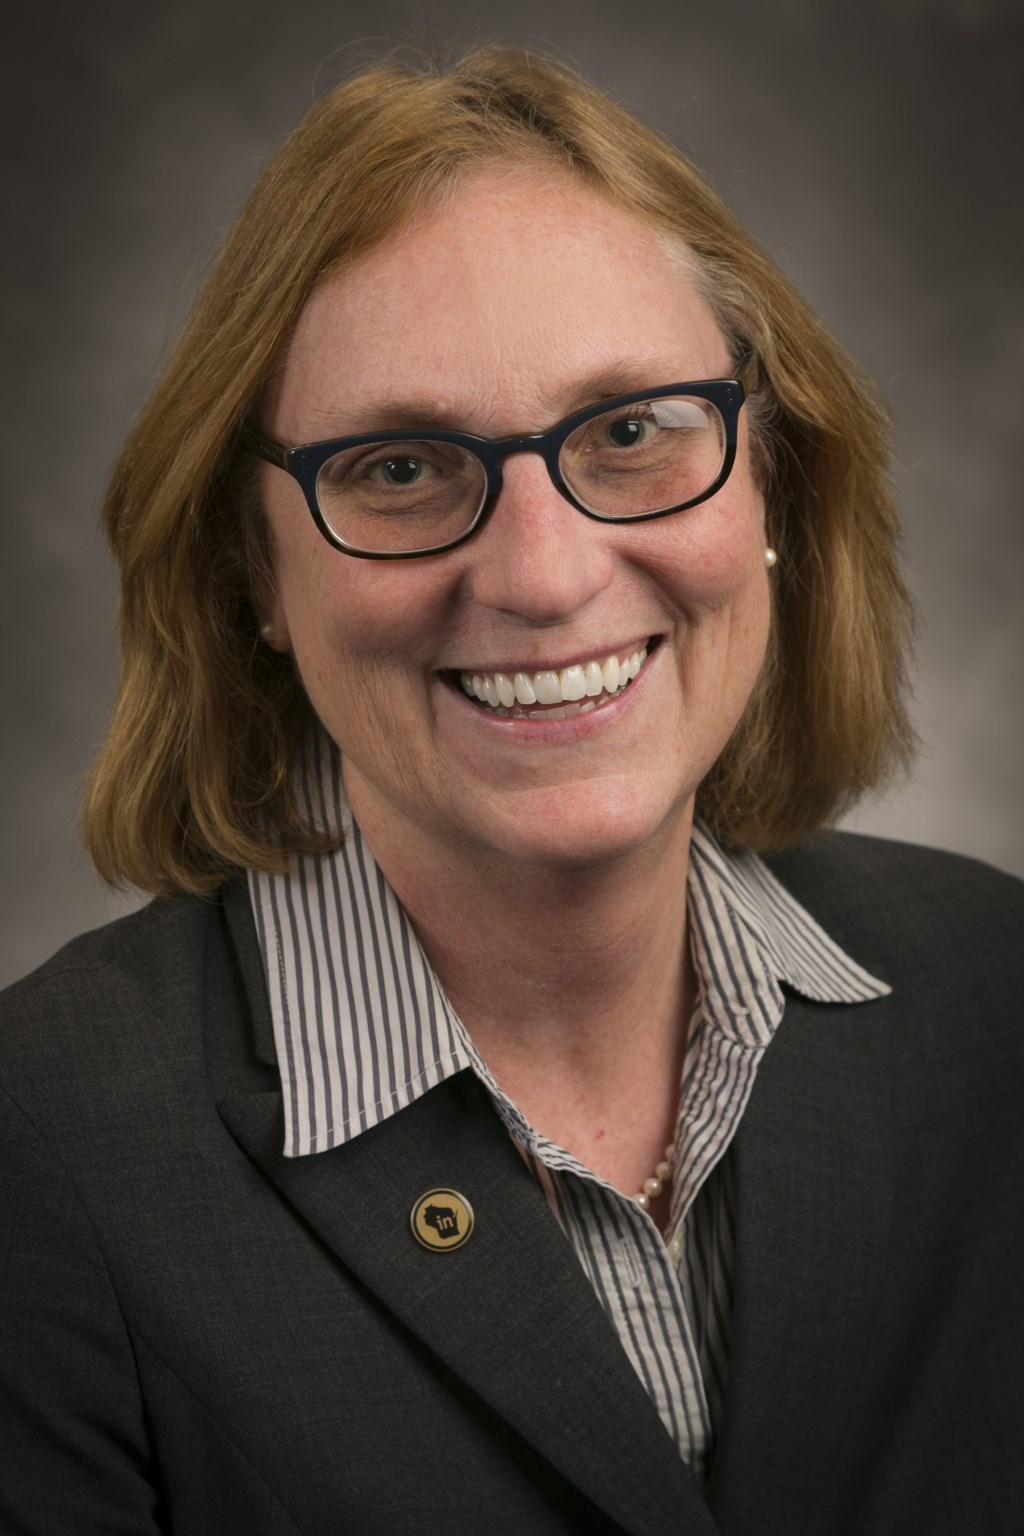 State economic development official named to Mid-America Economic Development Council Board